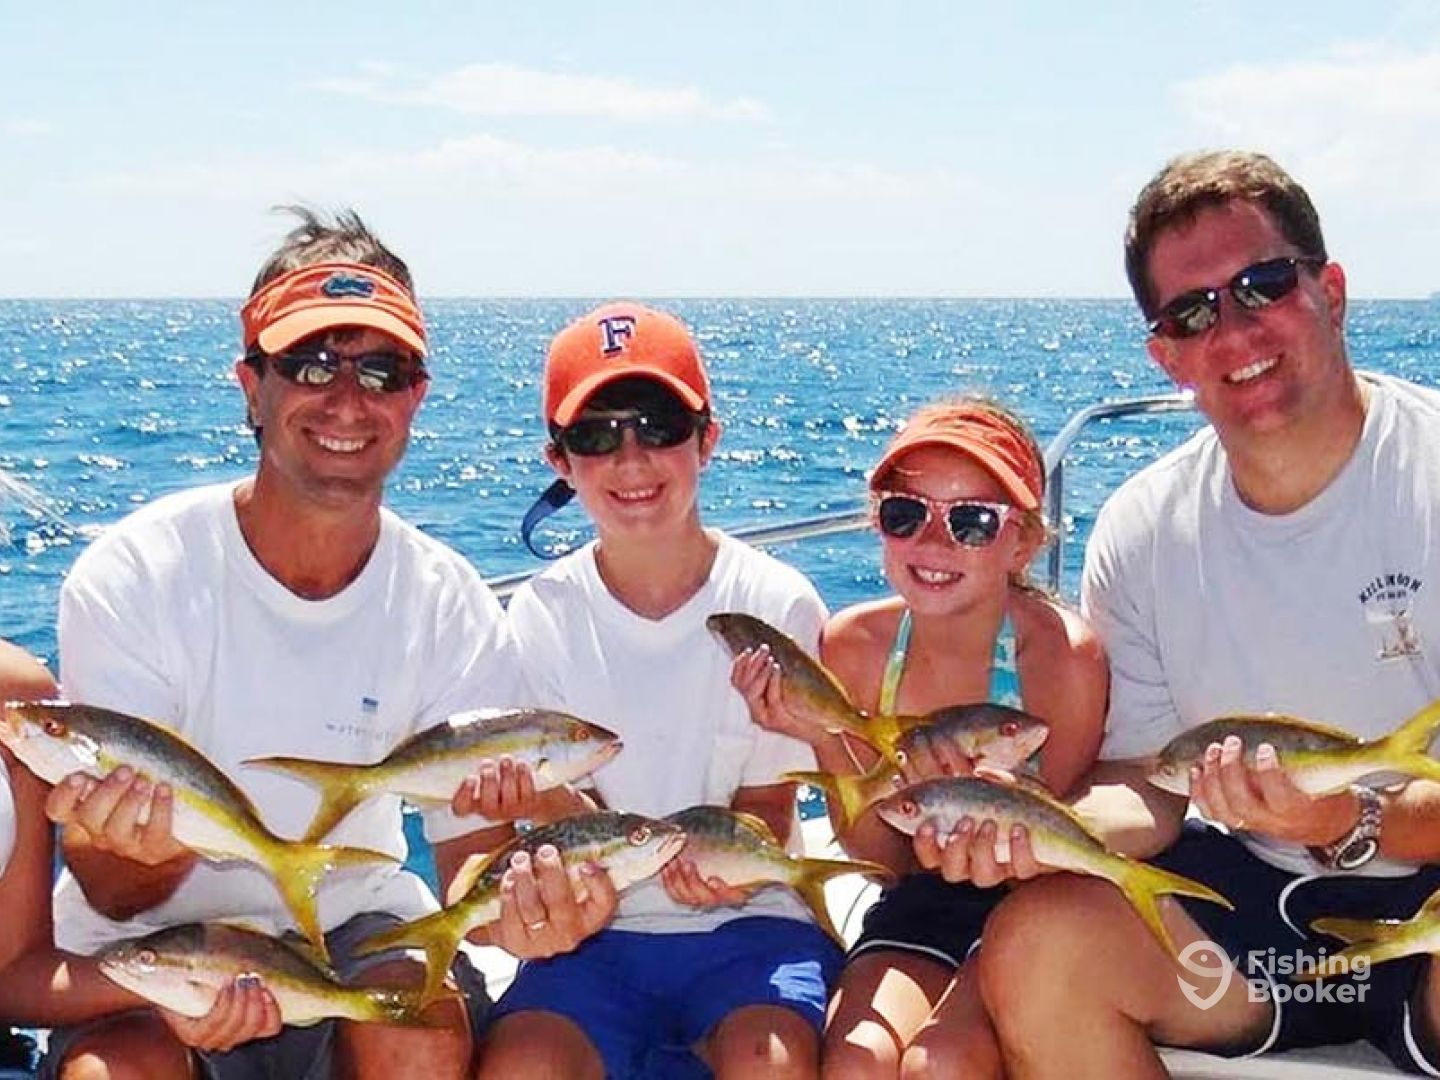 Get hooked fishing charter north myrtle beach sc for Get hooked fishing charters